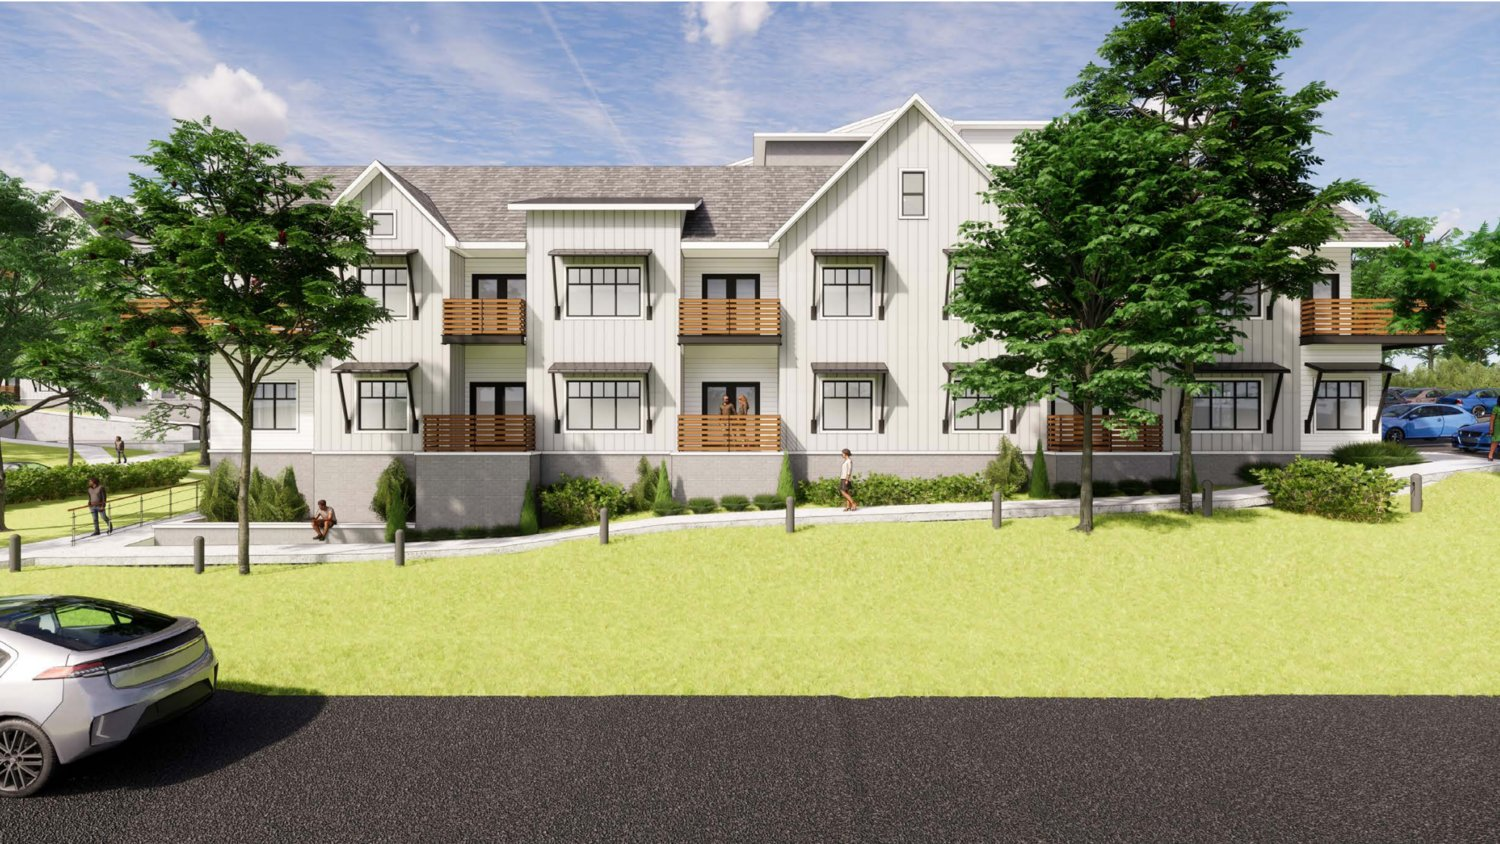 Elevation Development Co. and H Design Group LLC have reduced the project to 100 units in the multifamily portion.